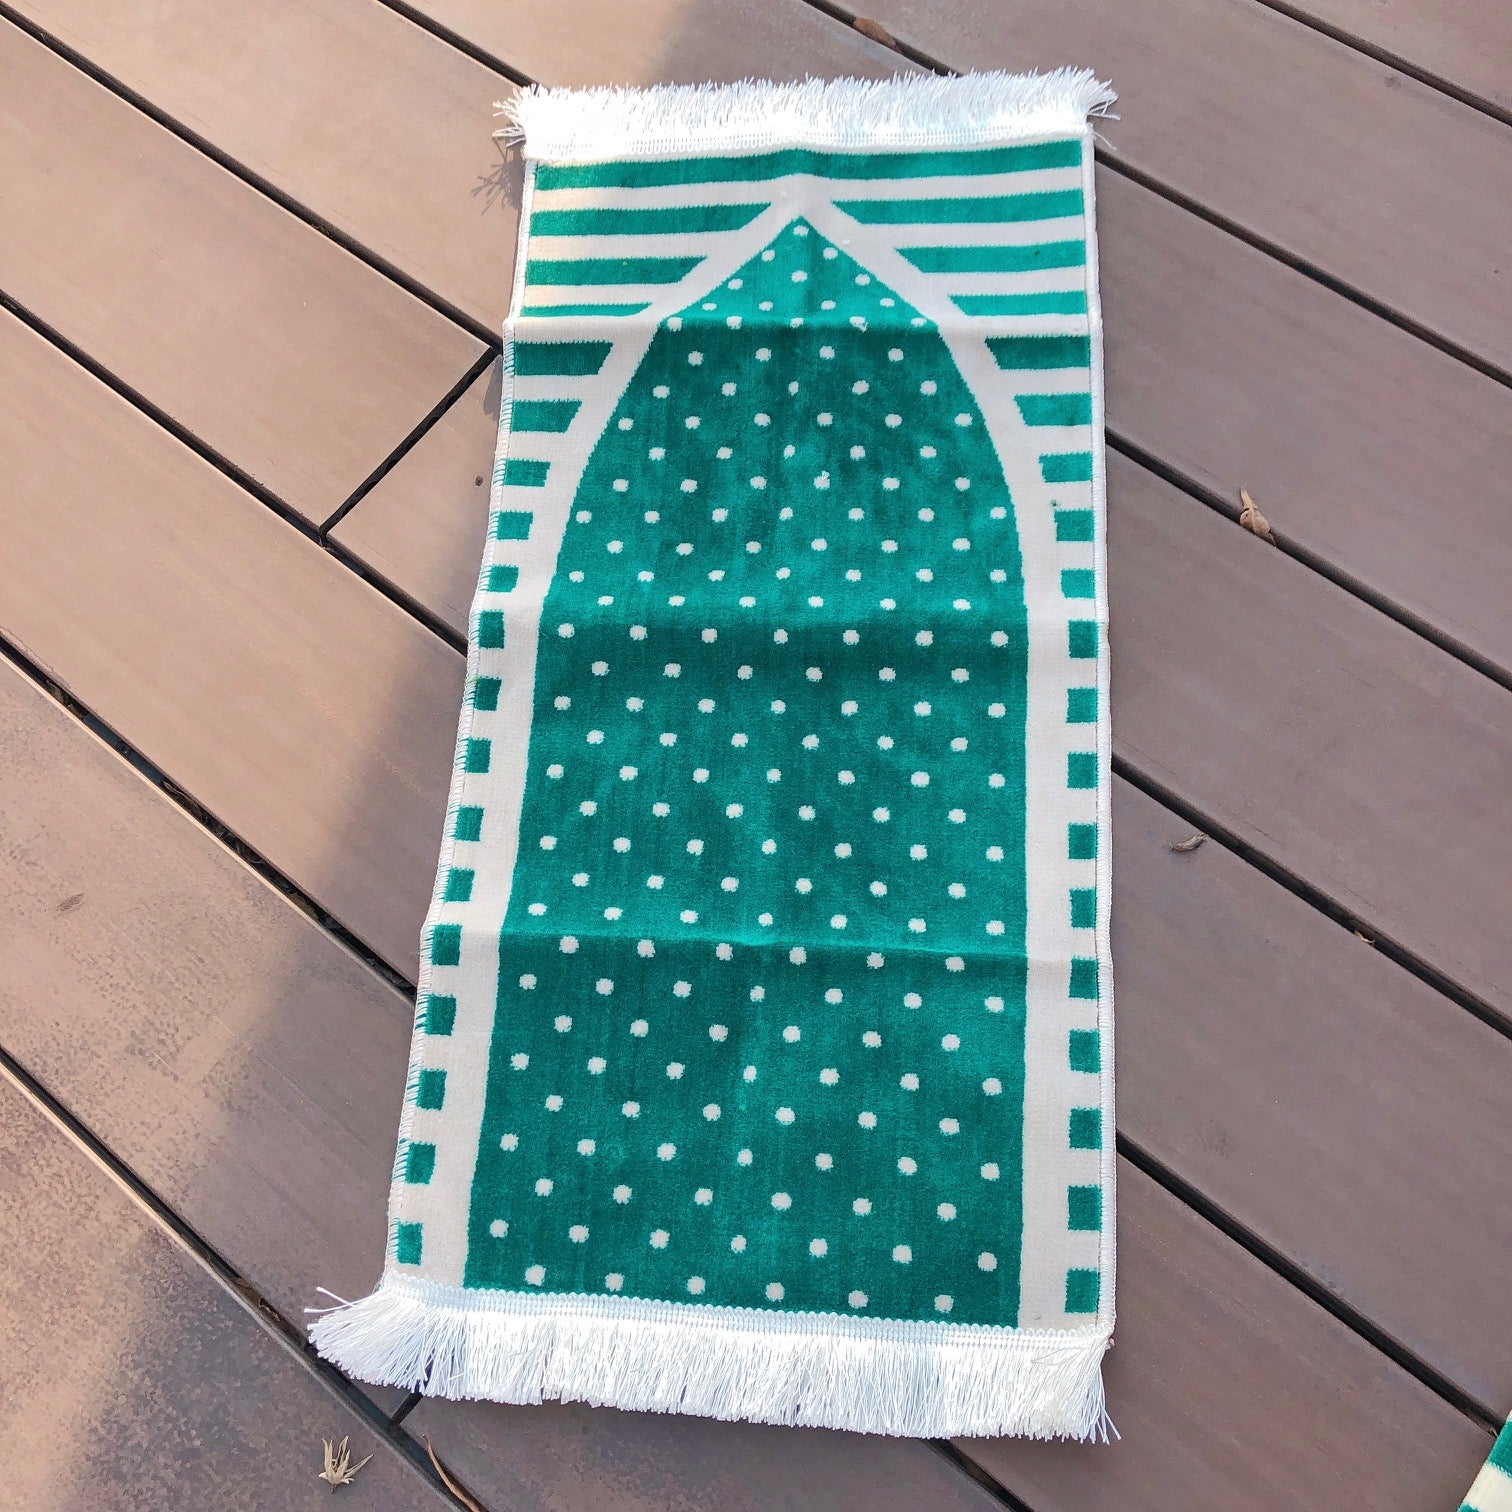 Toddler prayer rug in green